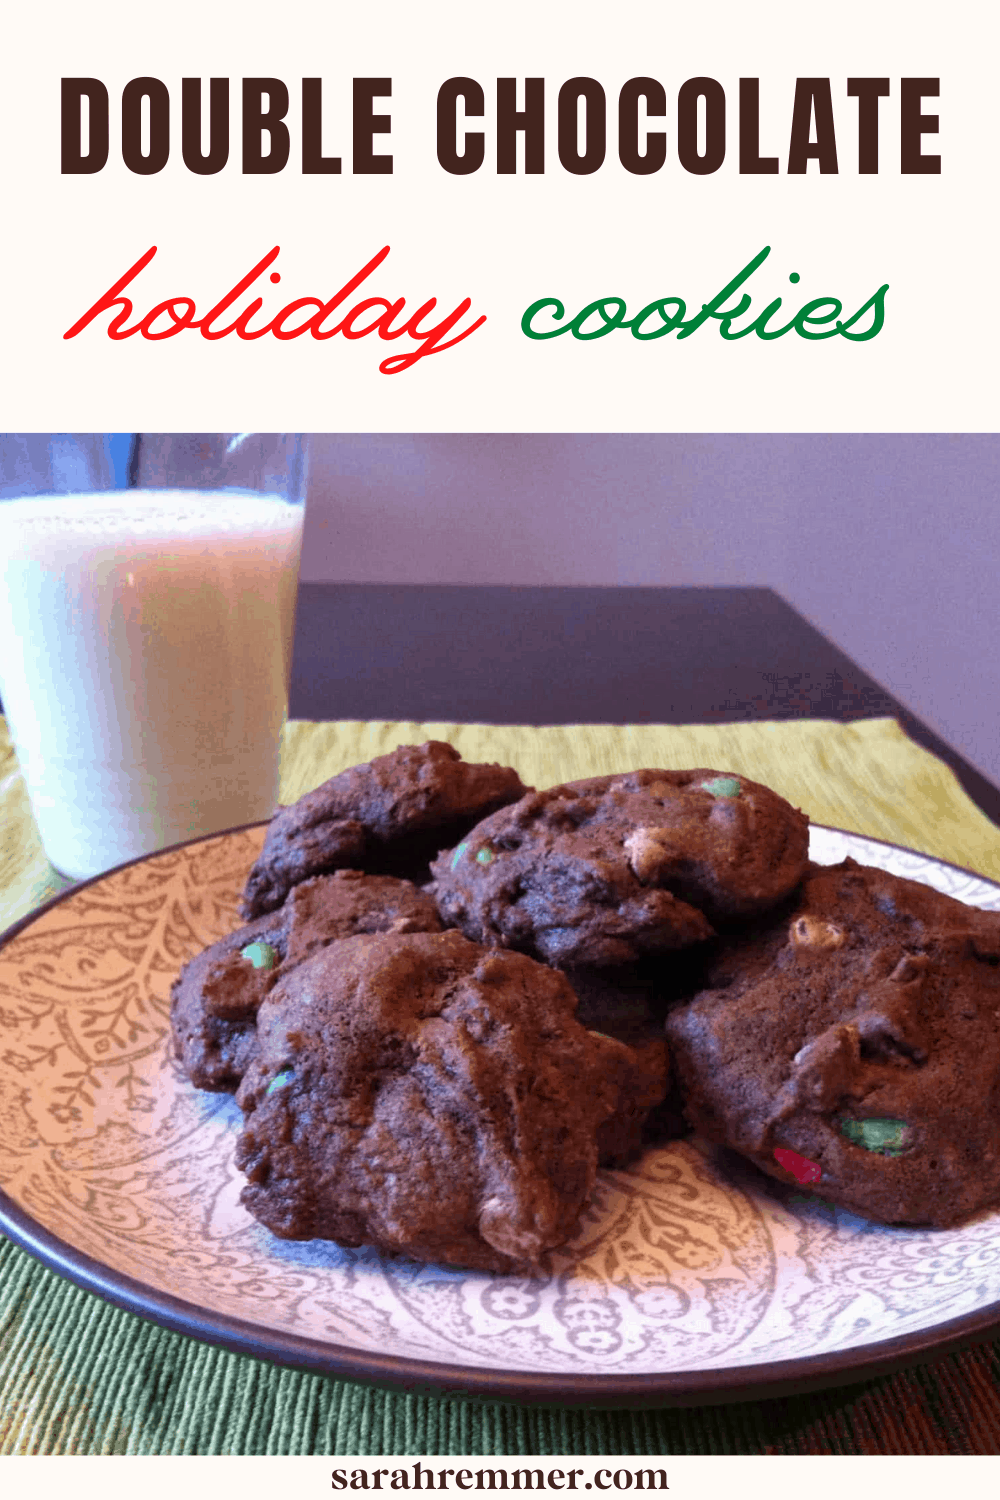 These double chocolate holiday cookies are perfect if you are anything like me and have limited holiday baking time! They are simple to make and delicious!